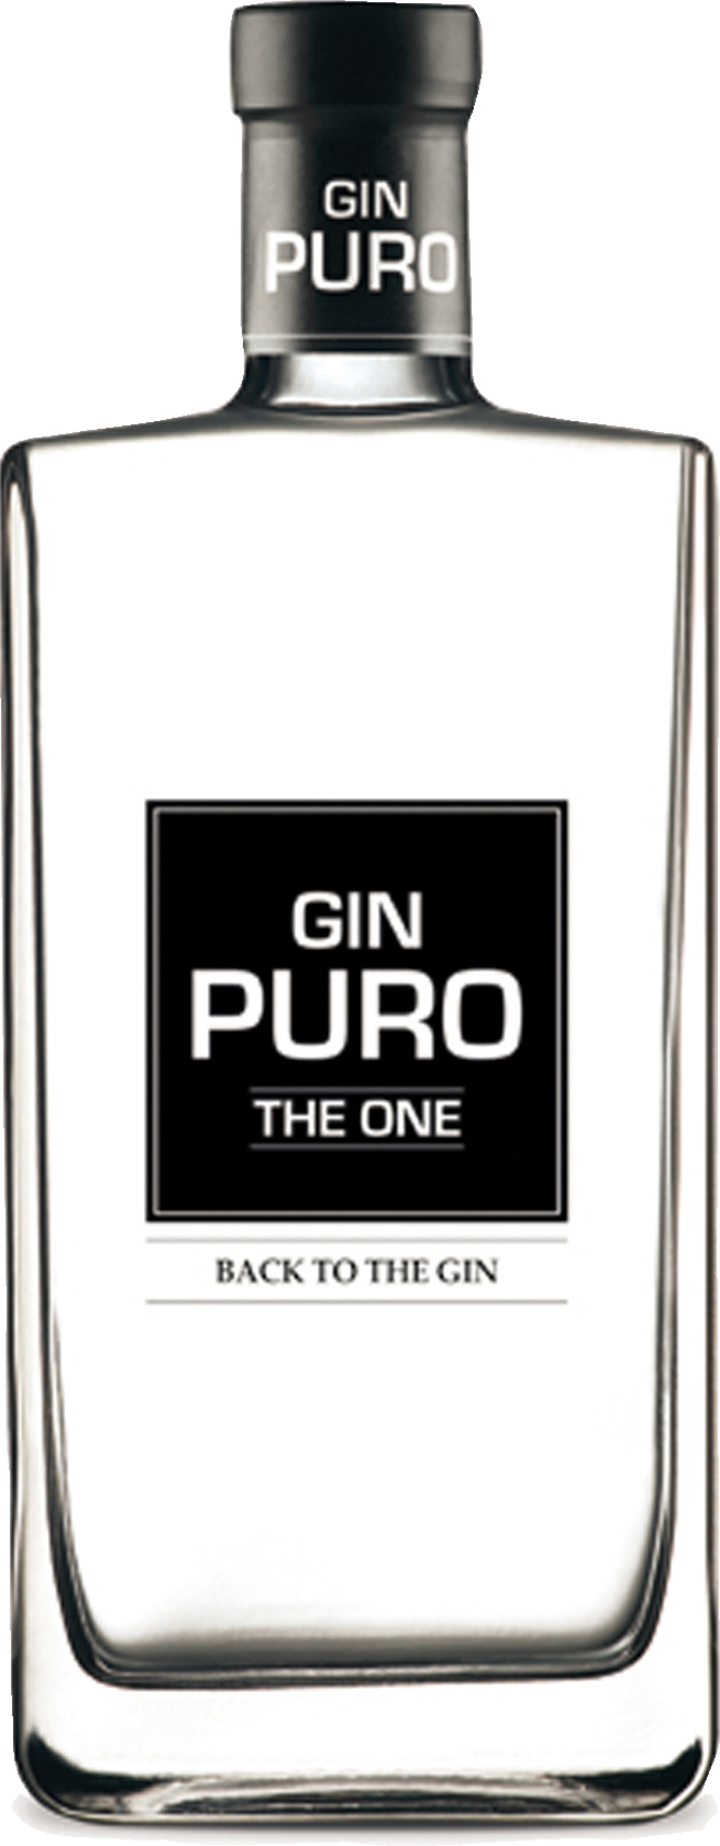 Gin Puro The One